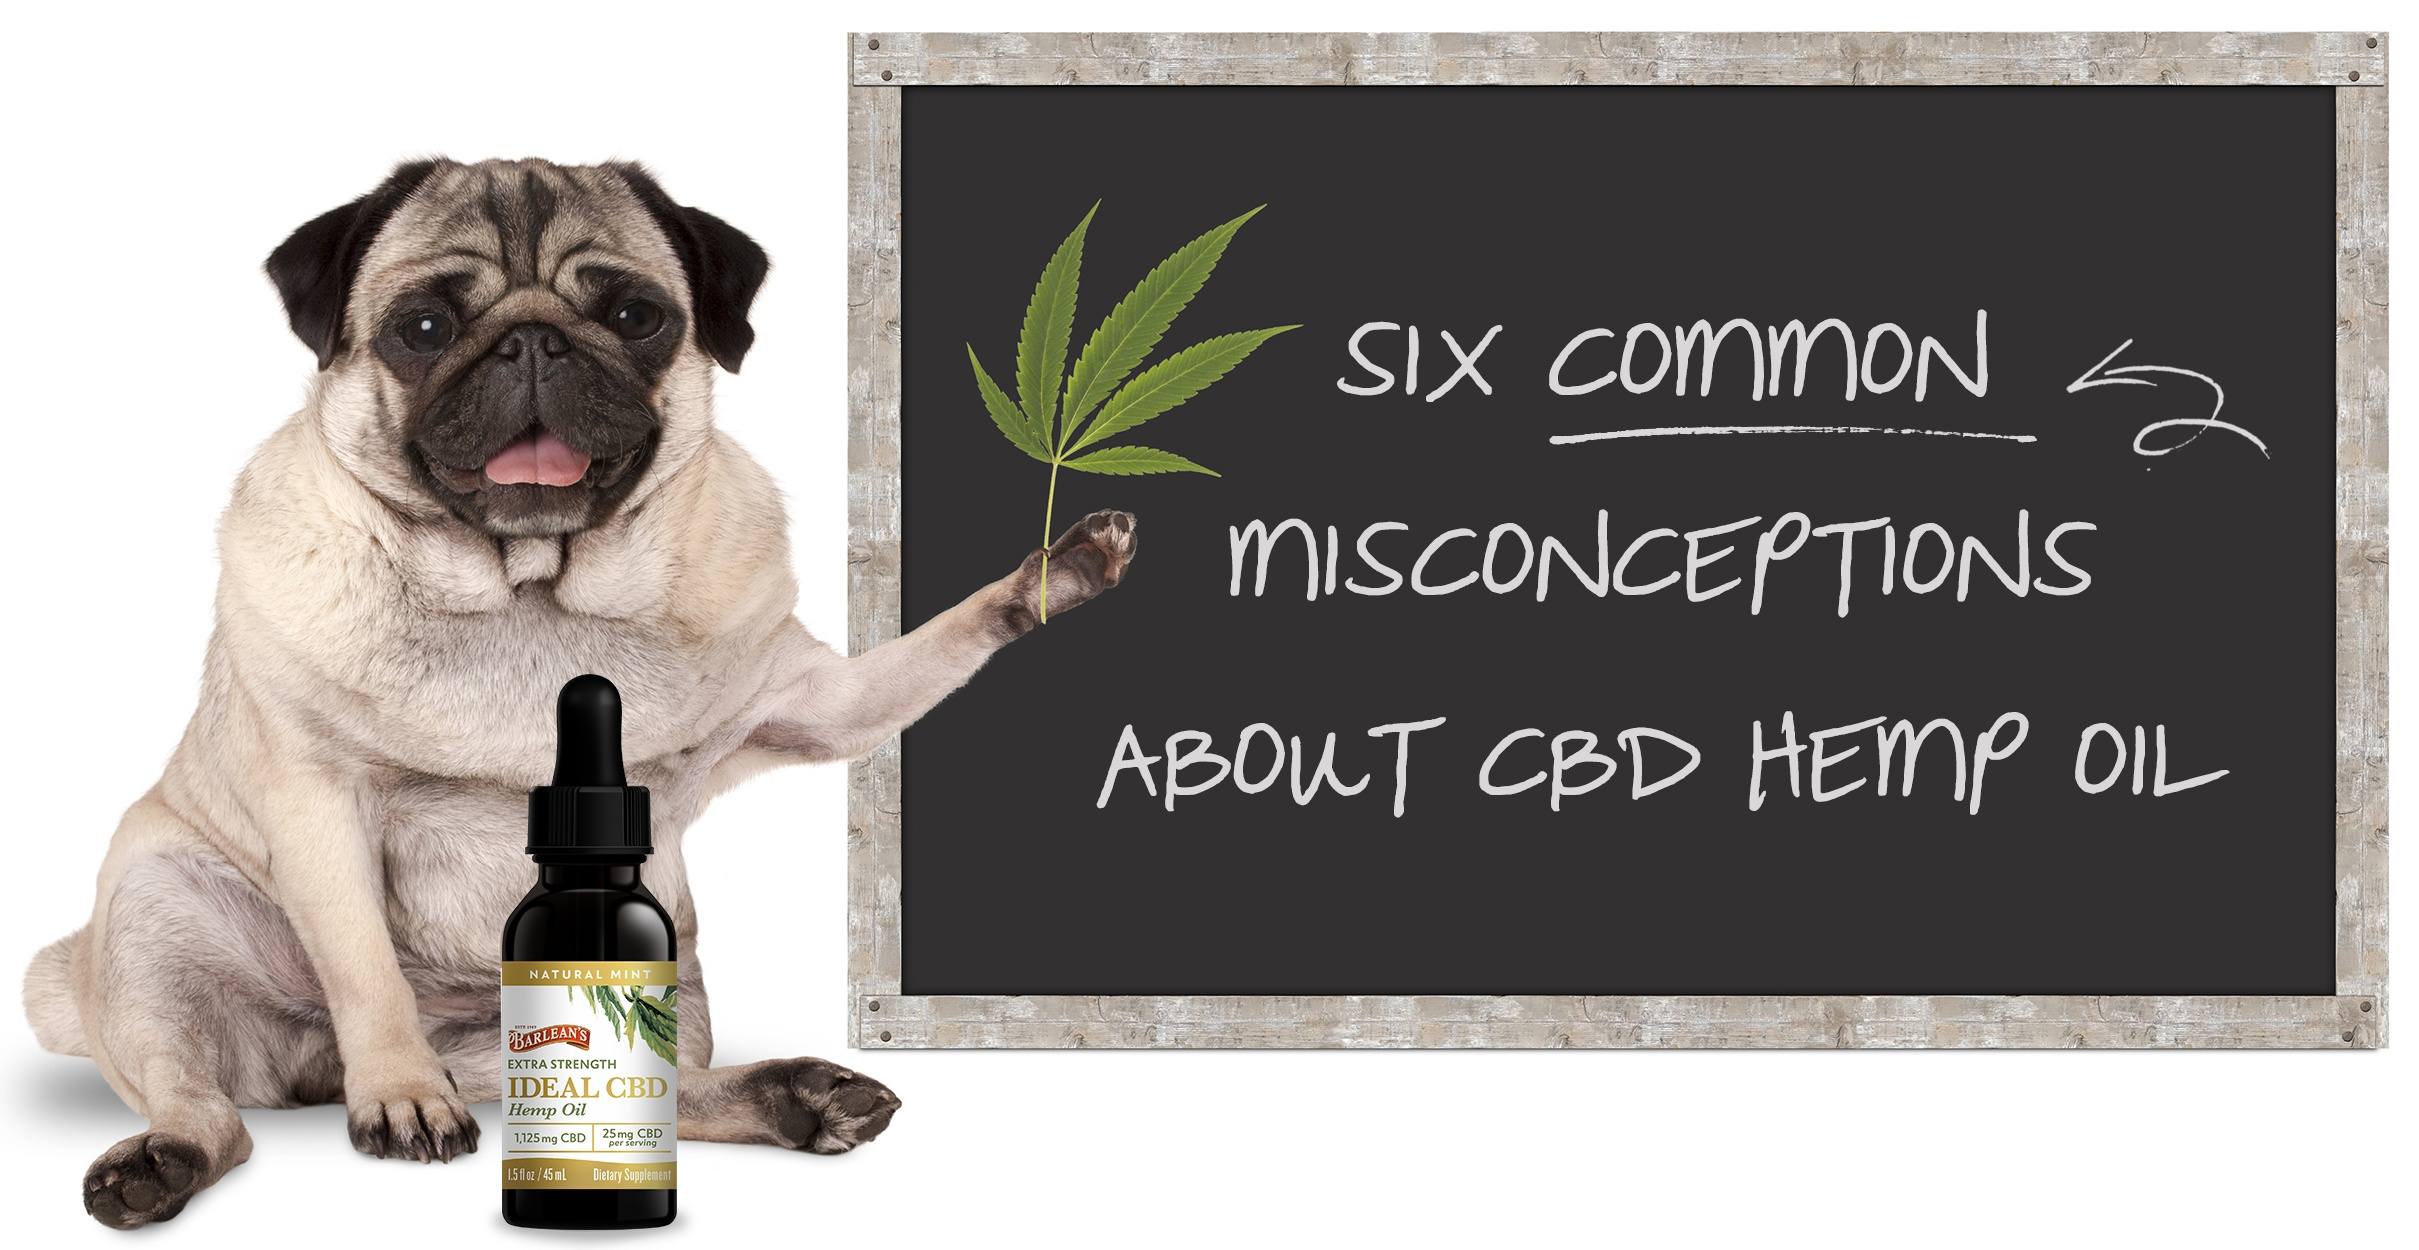 Miconcpetions About CBD